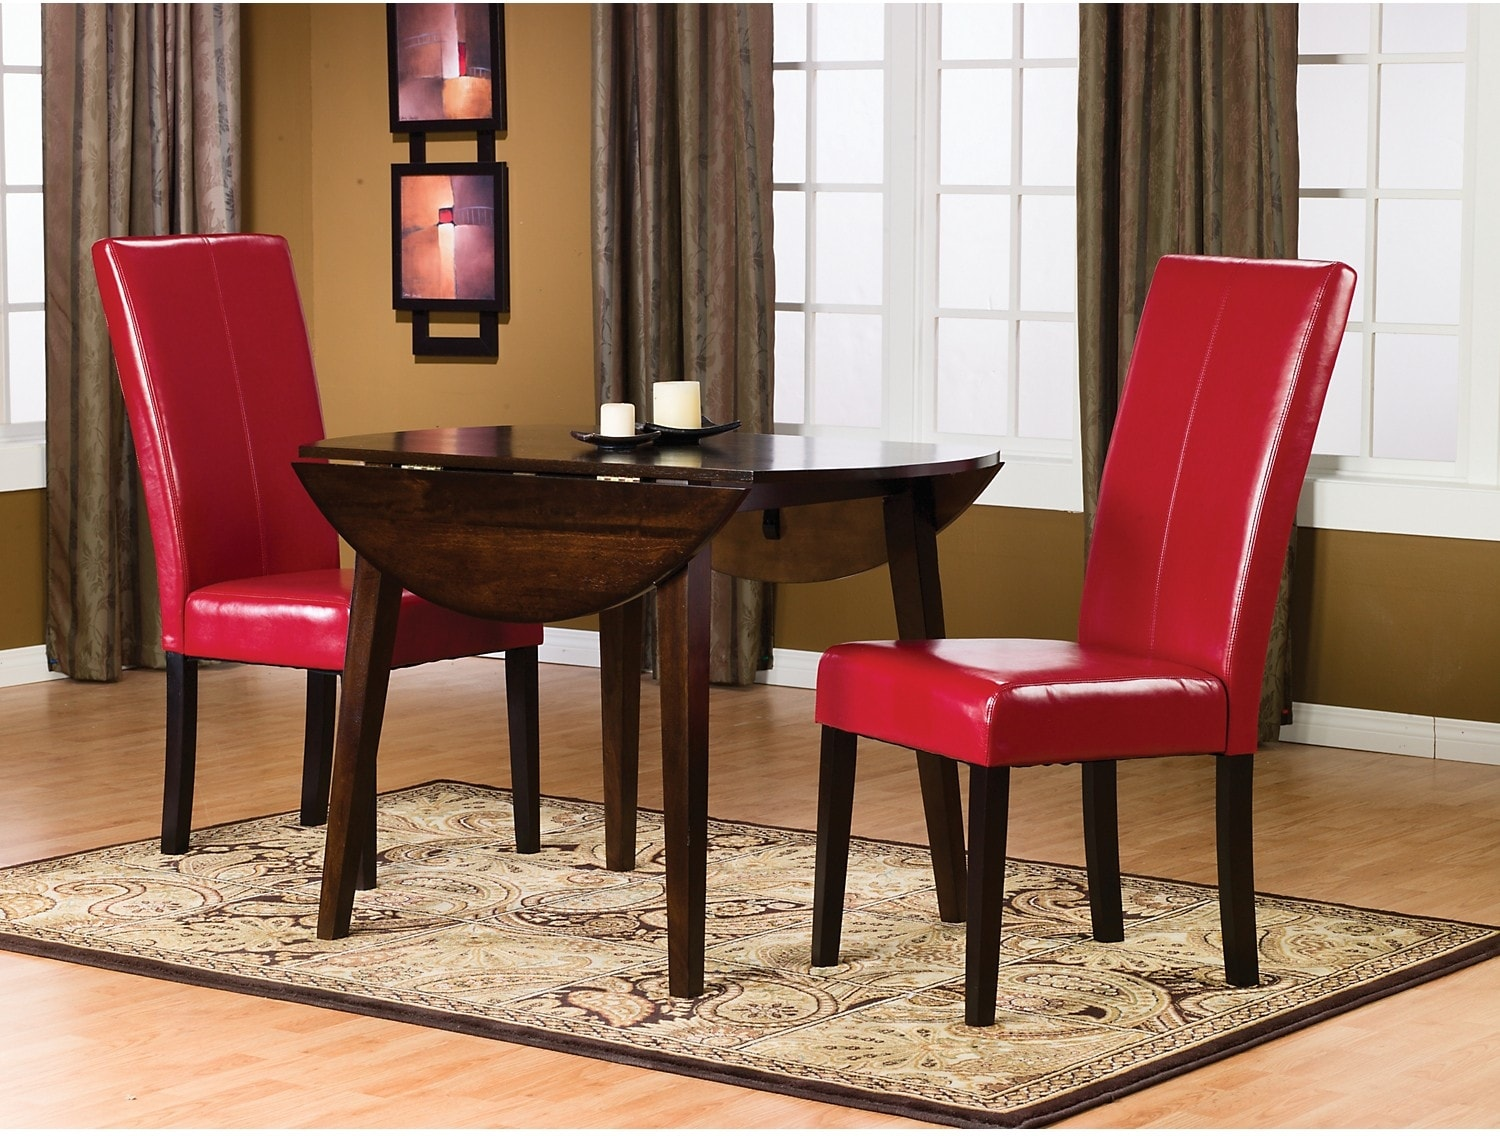 Dining Room Furniture - Dakota 3-Piece Round Table Dining Package w/ Red Chairs